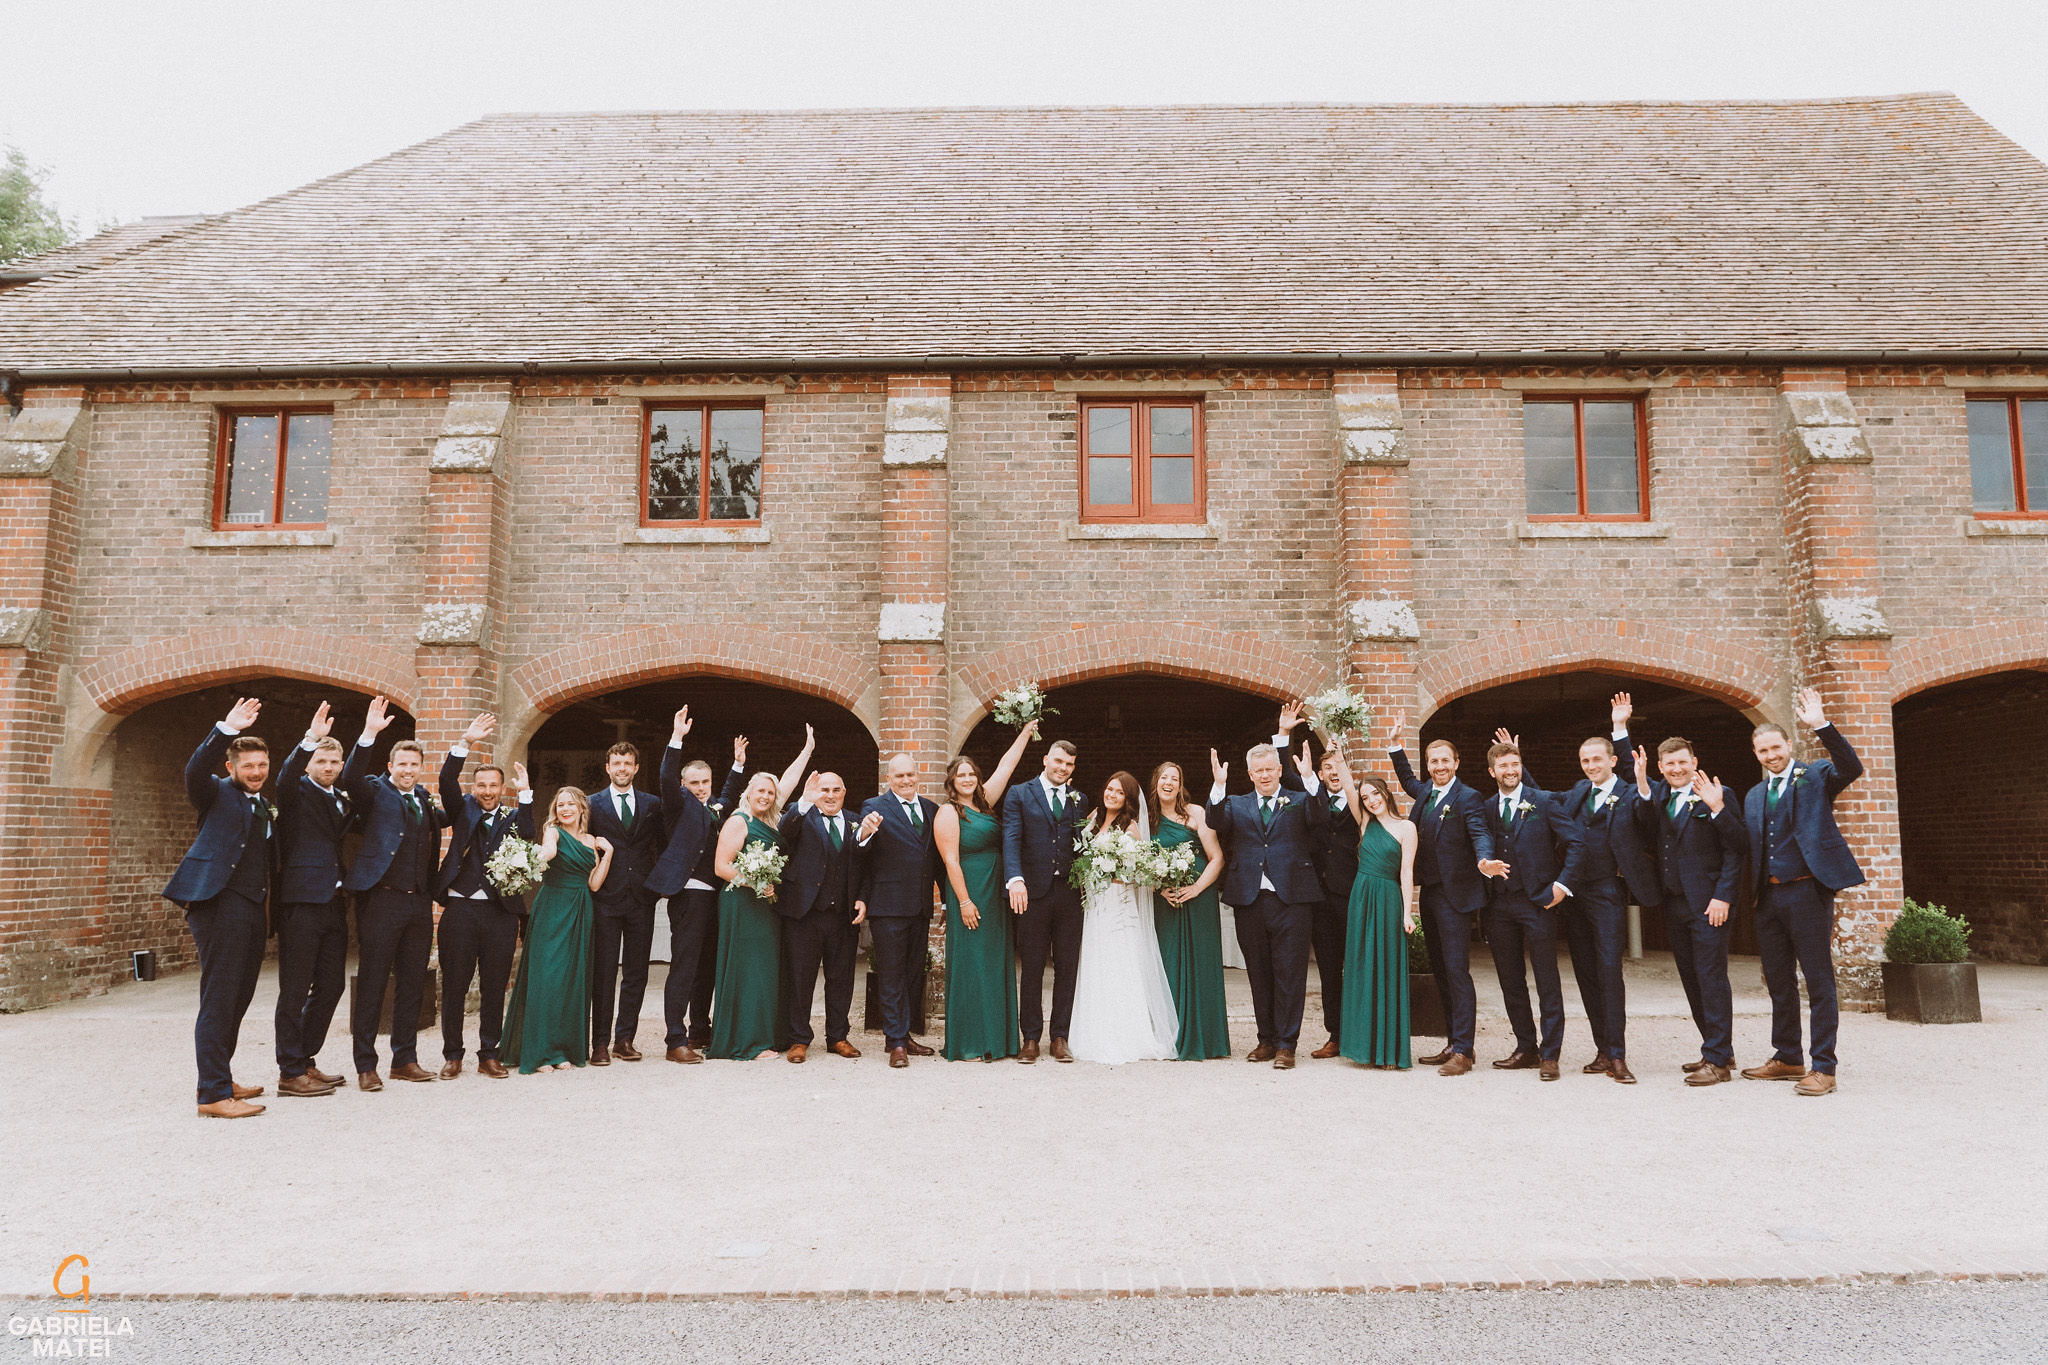 Bridal party group photo at South Stoke Barn wedding venue in Arundel by gabriela matei sussex photographer